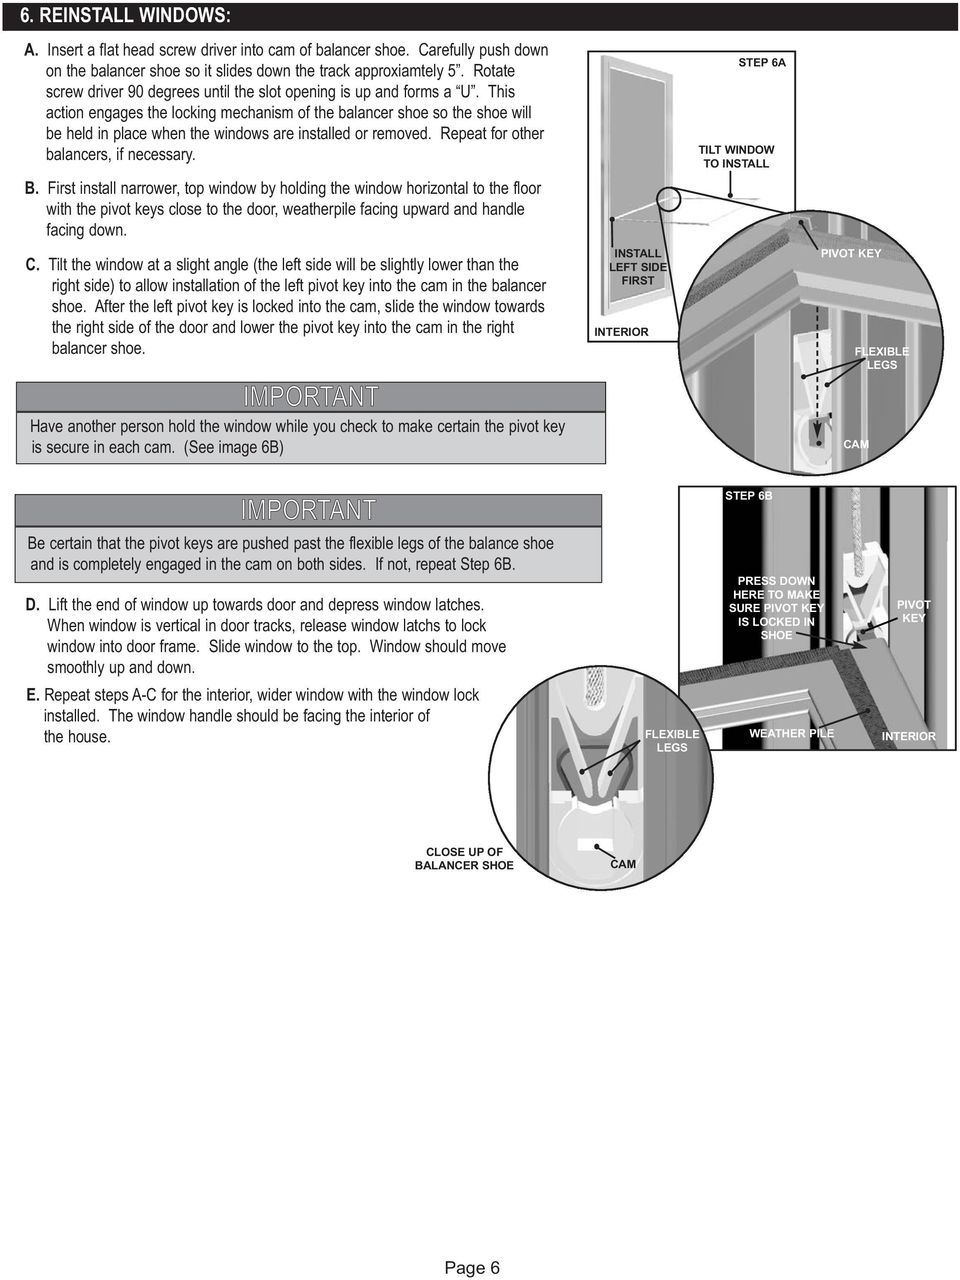 This action engages the locking mechanism of the balancer shoe so the shoe will be held in place when the windows are installed or removed. Repeat for other balancers, if necessary.